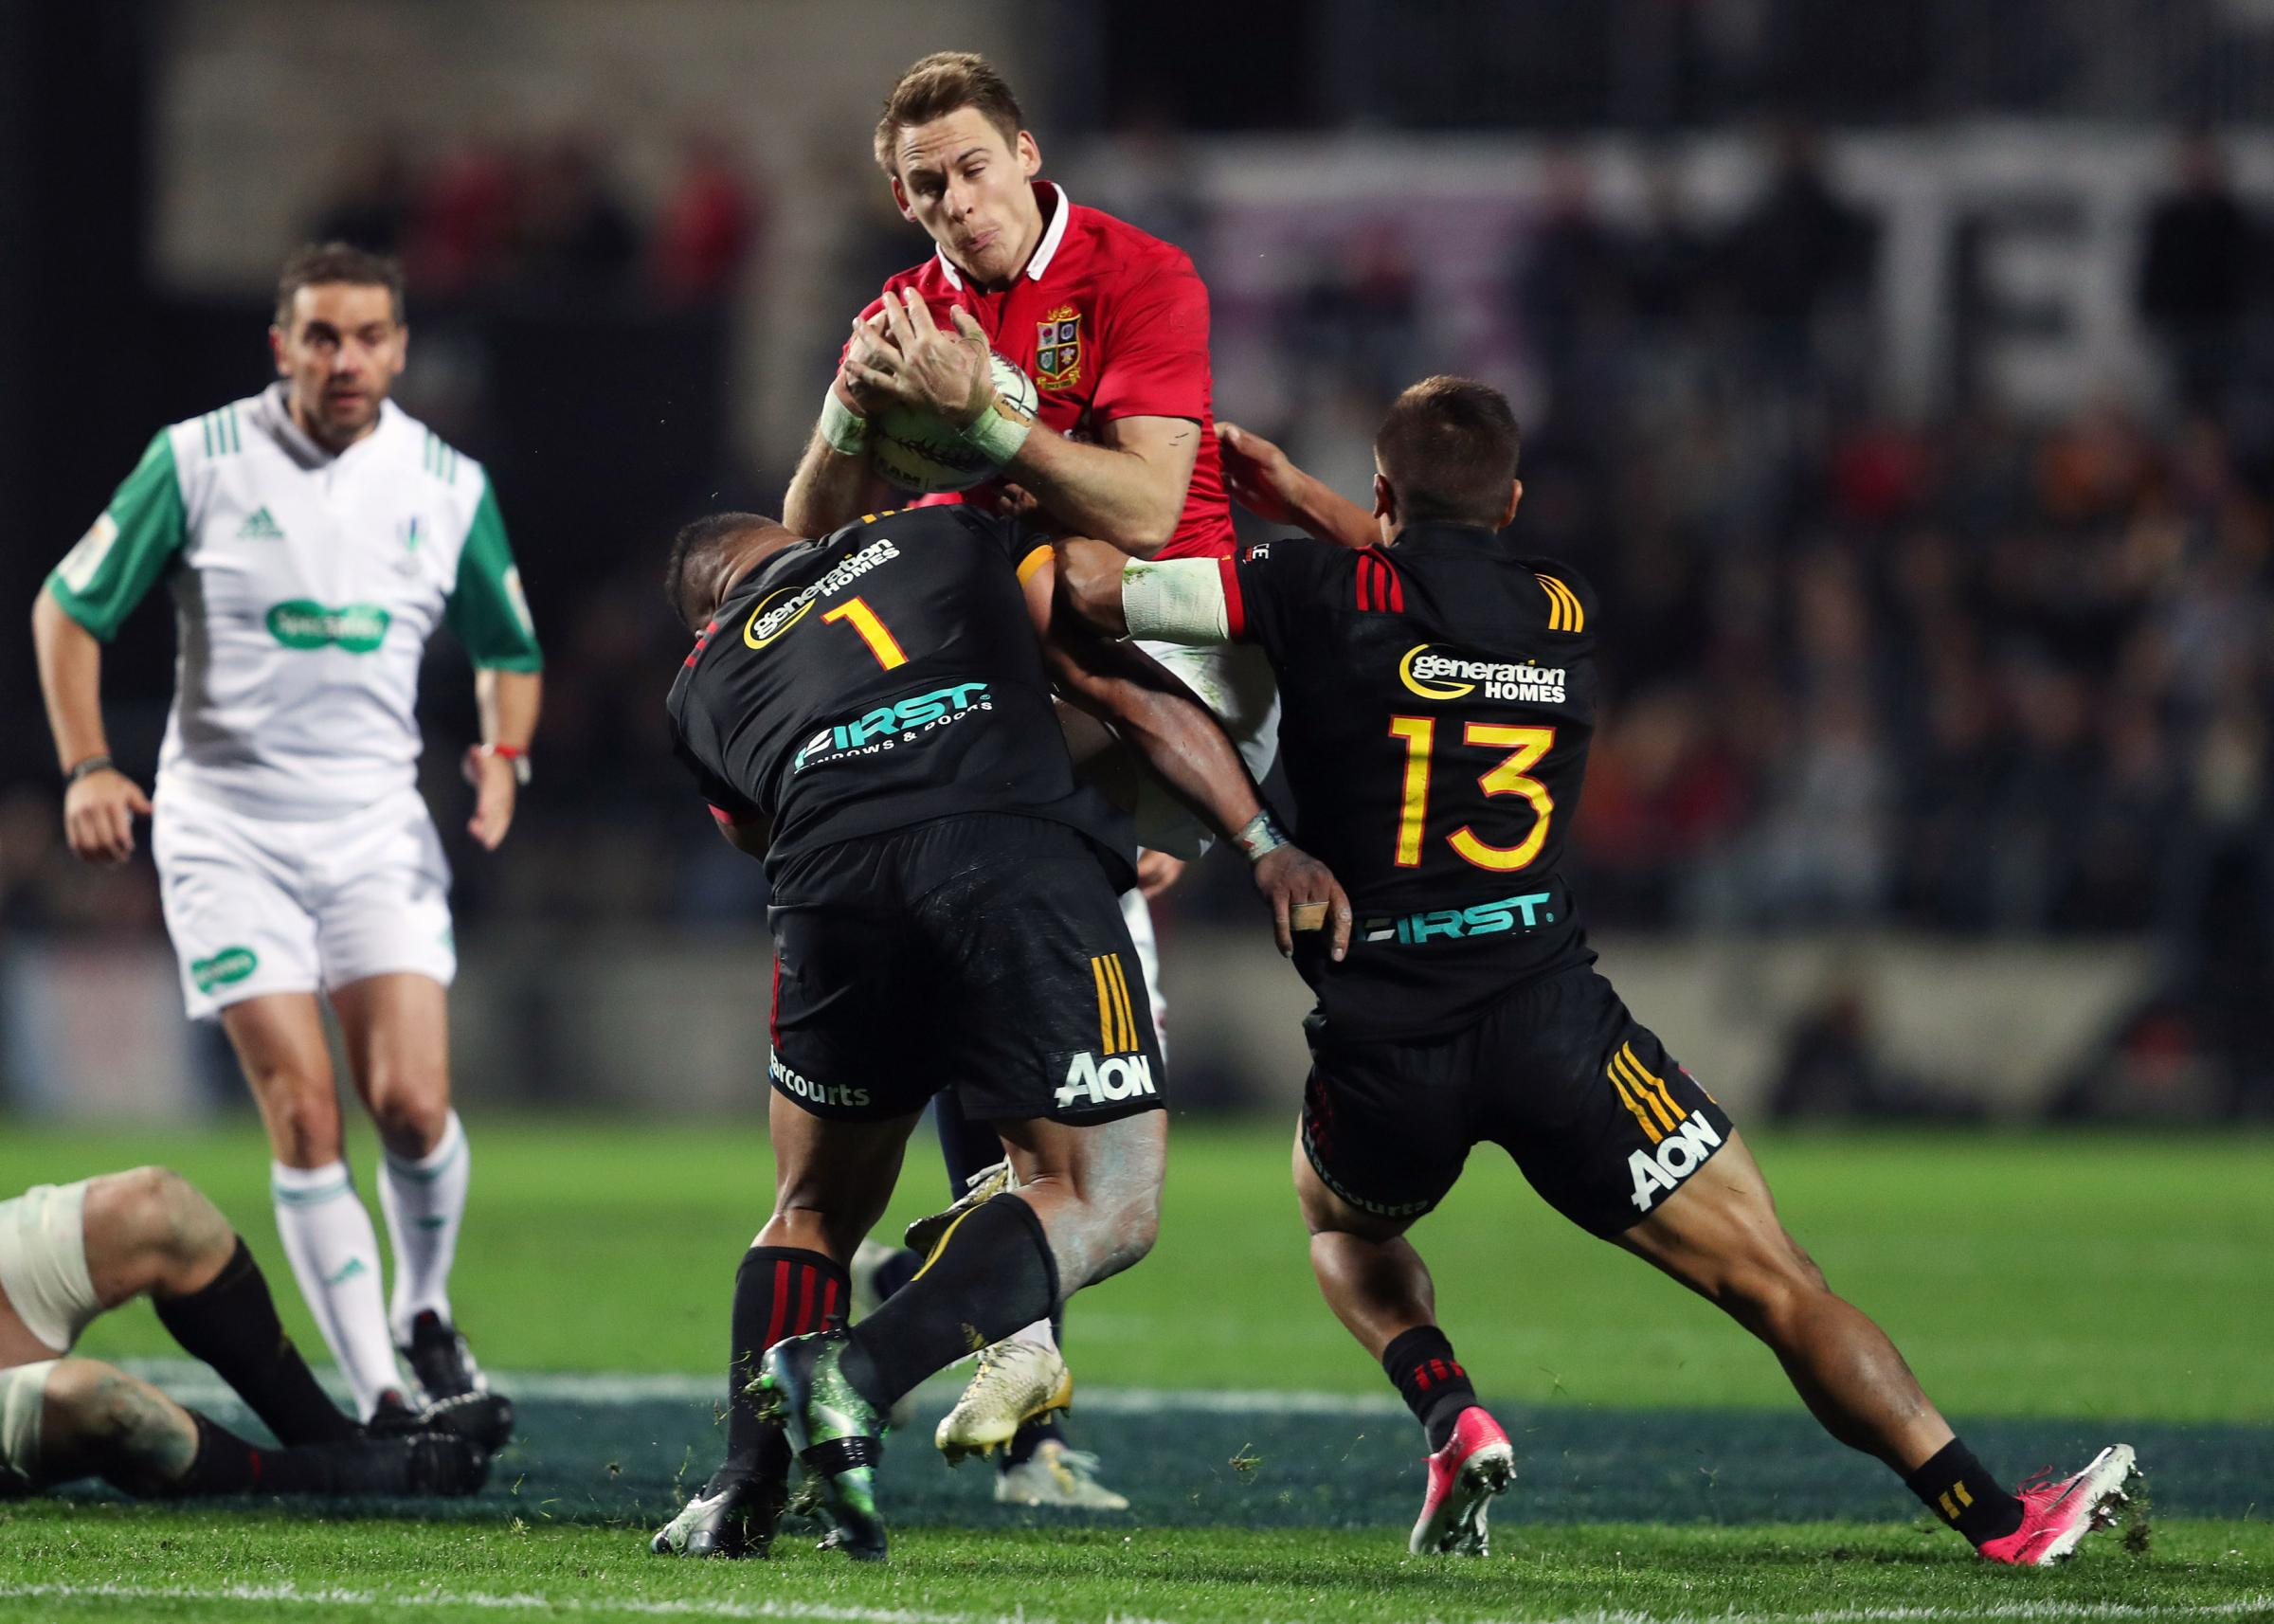 British and Irish Lions' Liam Williams is tackled by Chiefs Sigfried Fisiihoi and Tim Nanai Williams during the tour match at the FMG Stadium, Hamilton. PRESS ASSOCIATION Photo. Picture date: Tuesday June 20, 2017. See PA story RUGBYU Lions. Photo cre